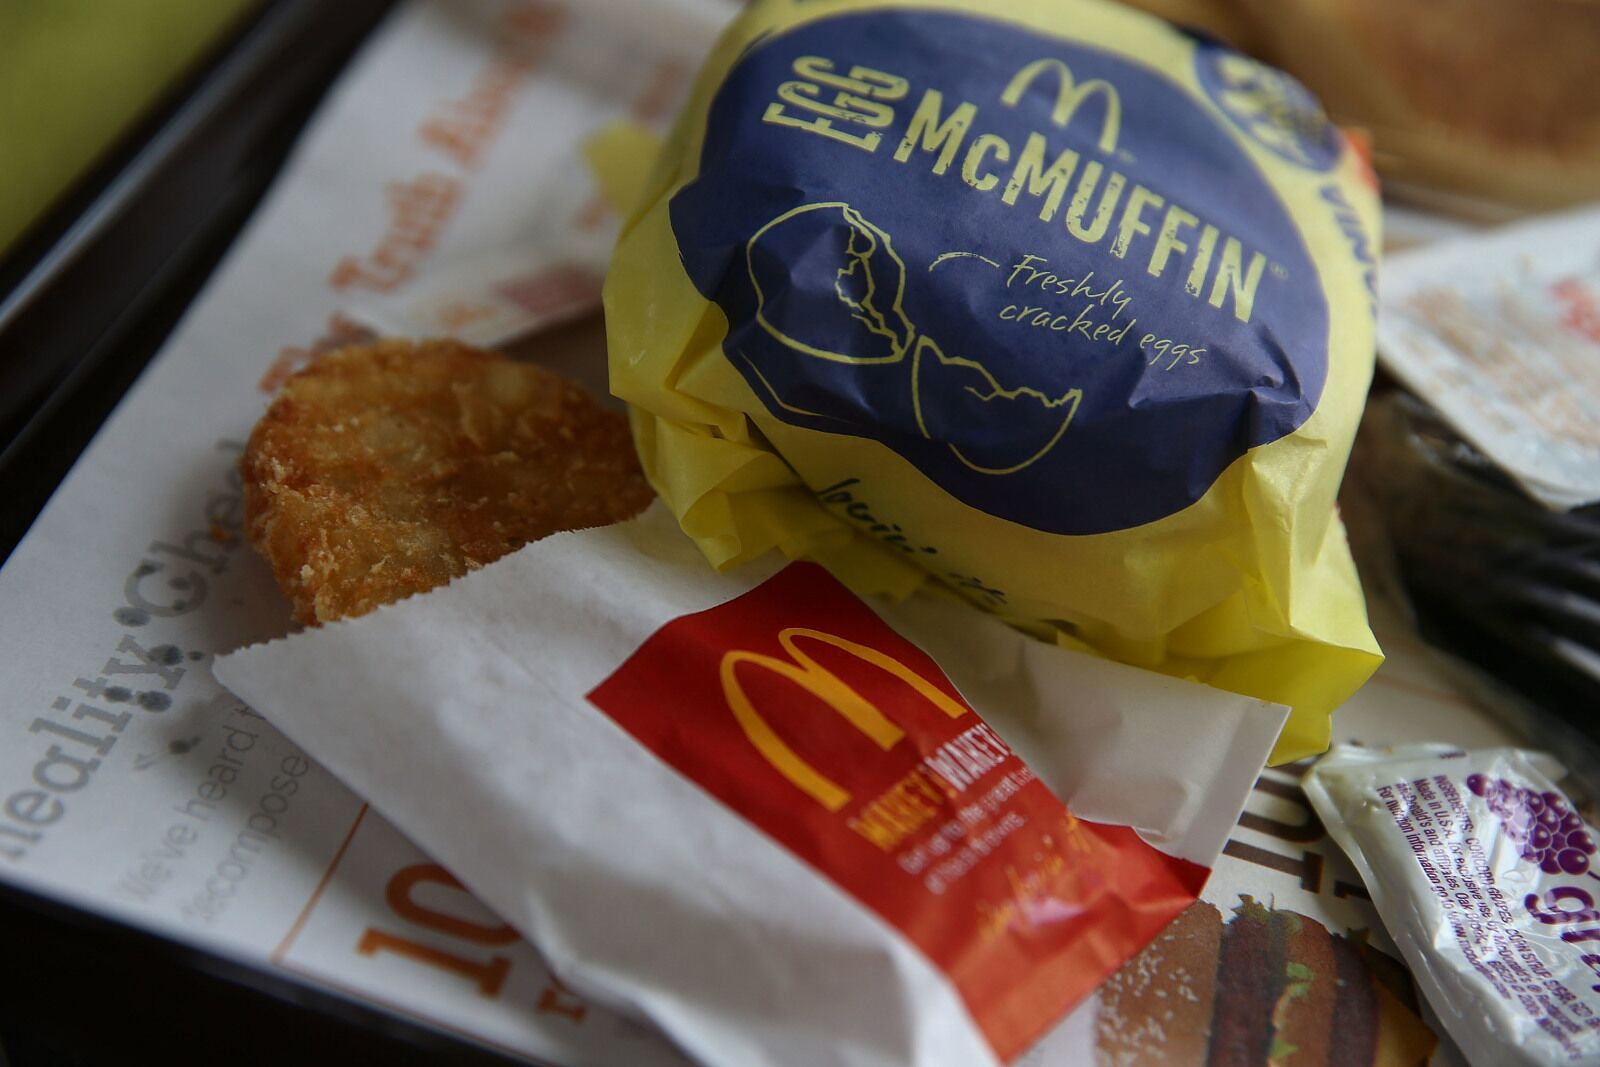 McDonald's: These breakfast hacks will make your next meal your own